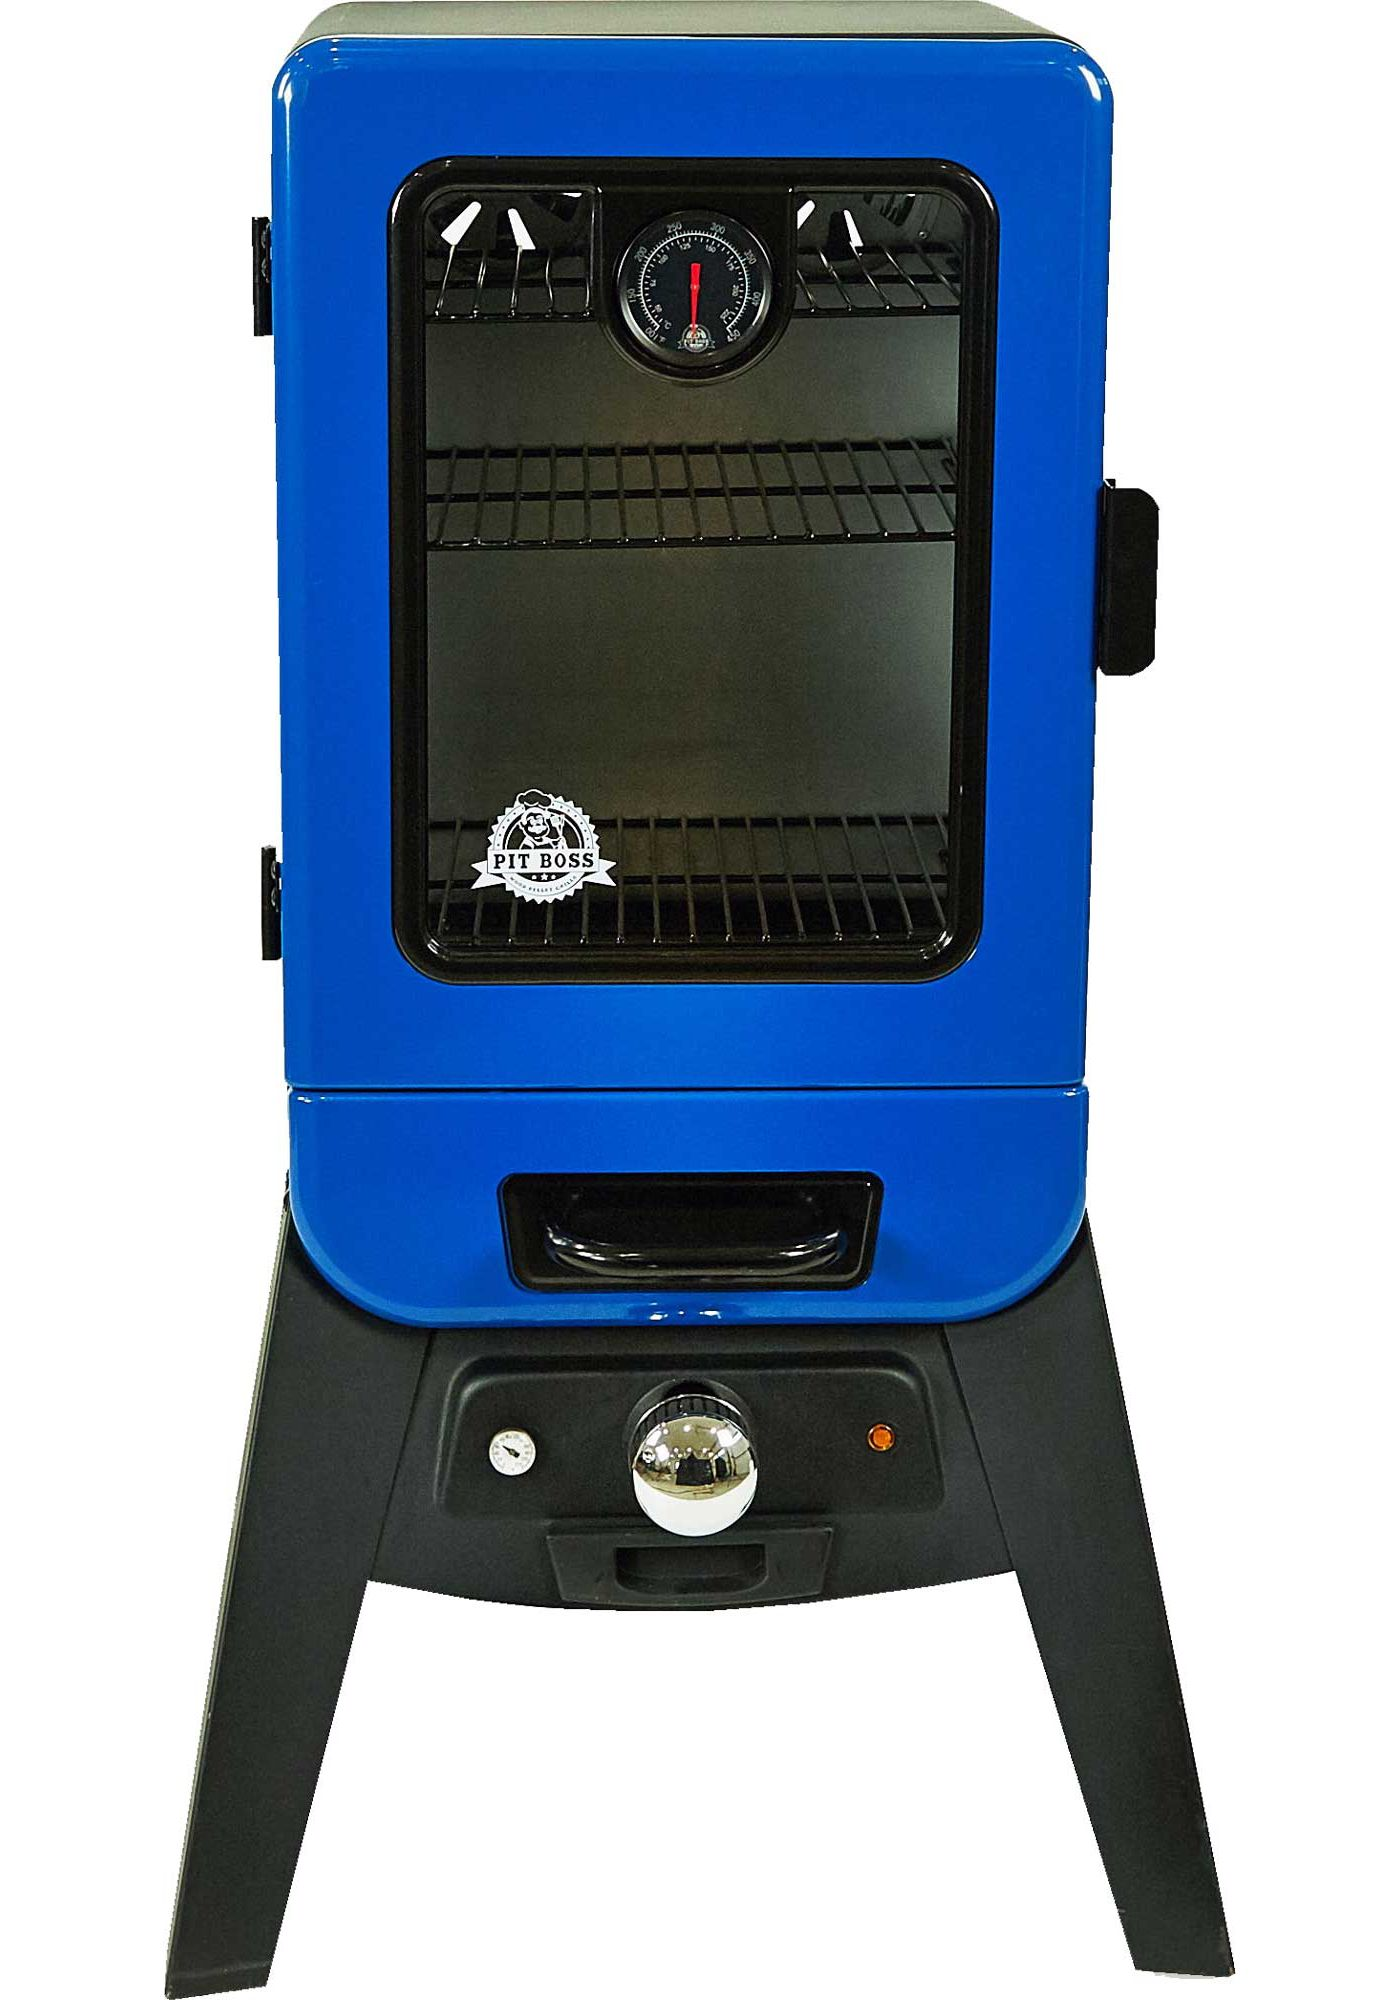 Pit Boss Blue Blazing 2 Analog Electric Smoker